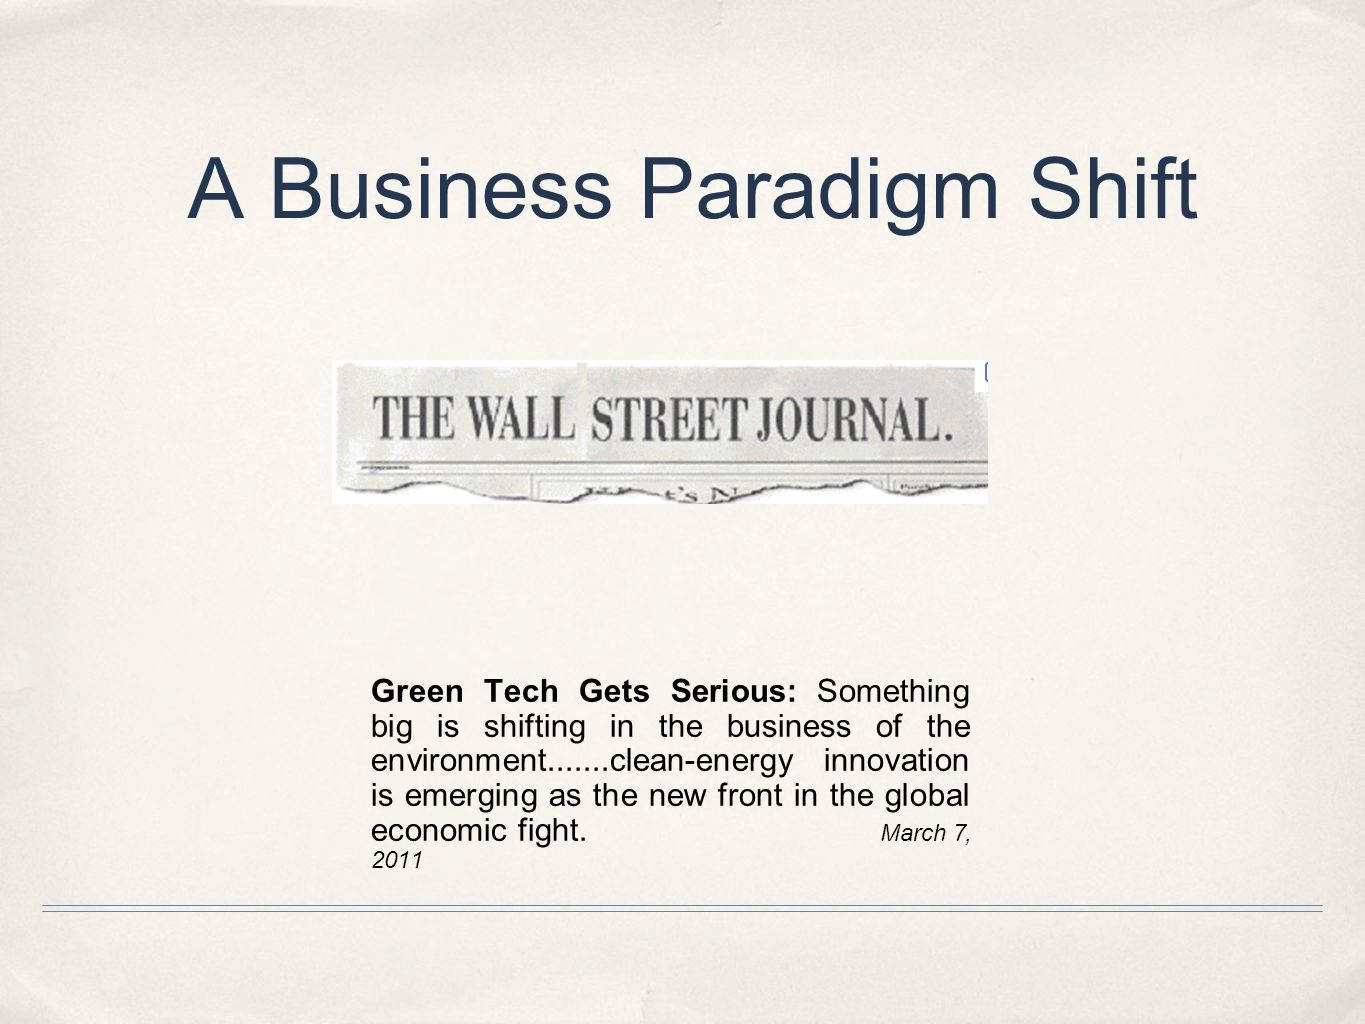 A Business Paradigm Shift Green Tech Gets Serious: Something big is shifting in the business of the environment.......clean-energy innovation is emerging as the new front in the global economic fight.